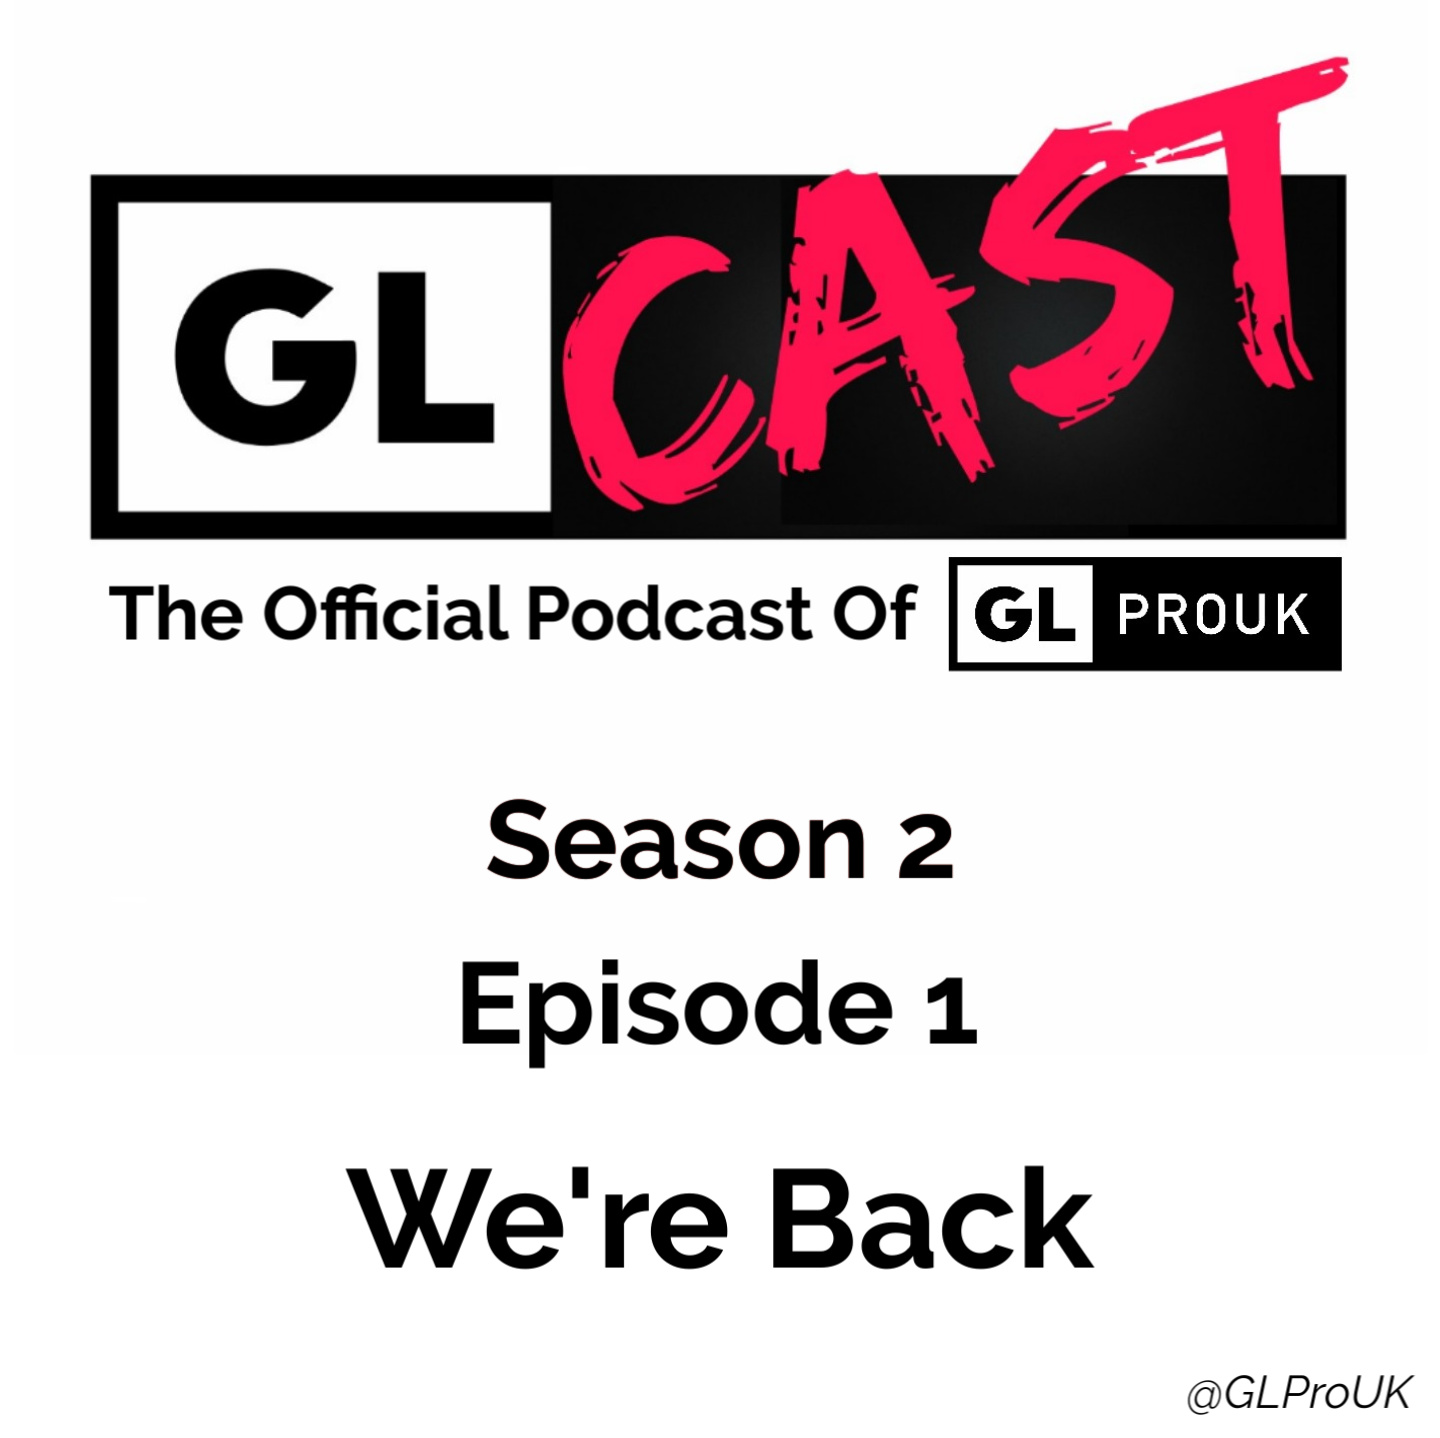 Ep 0201: We're Back show art